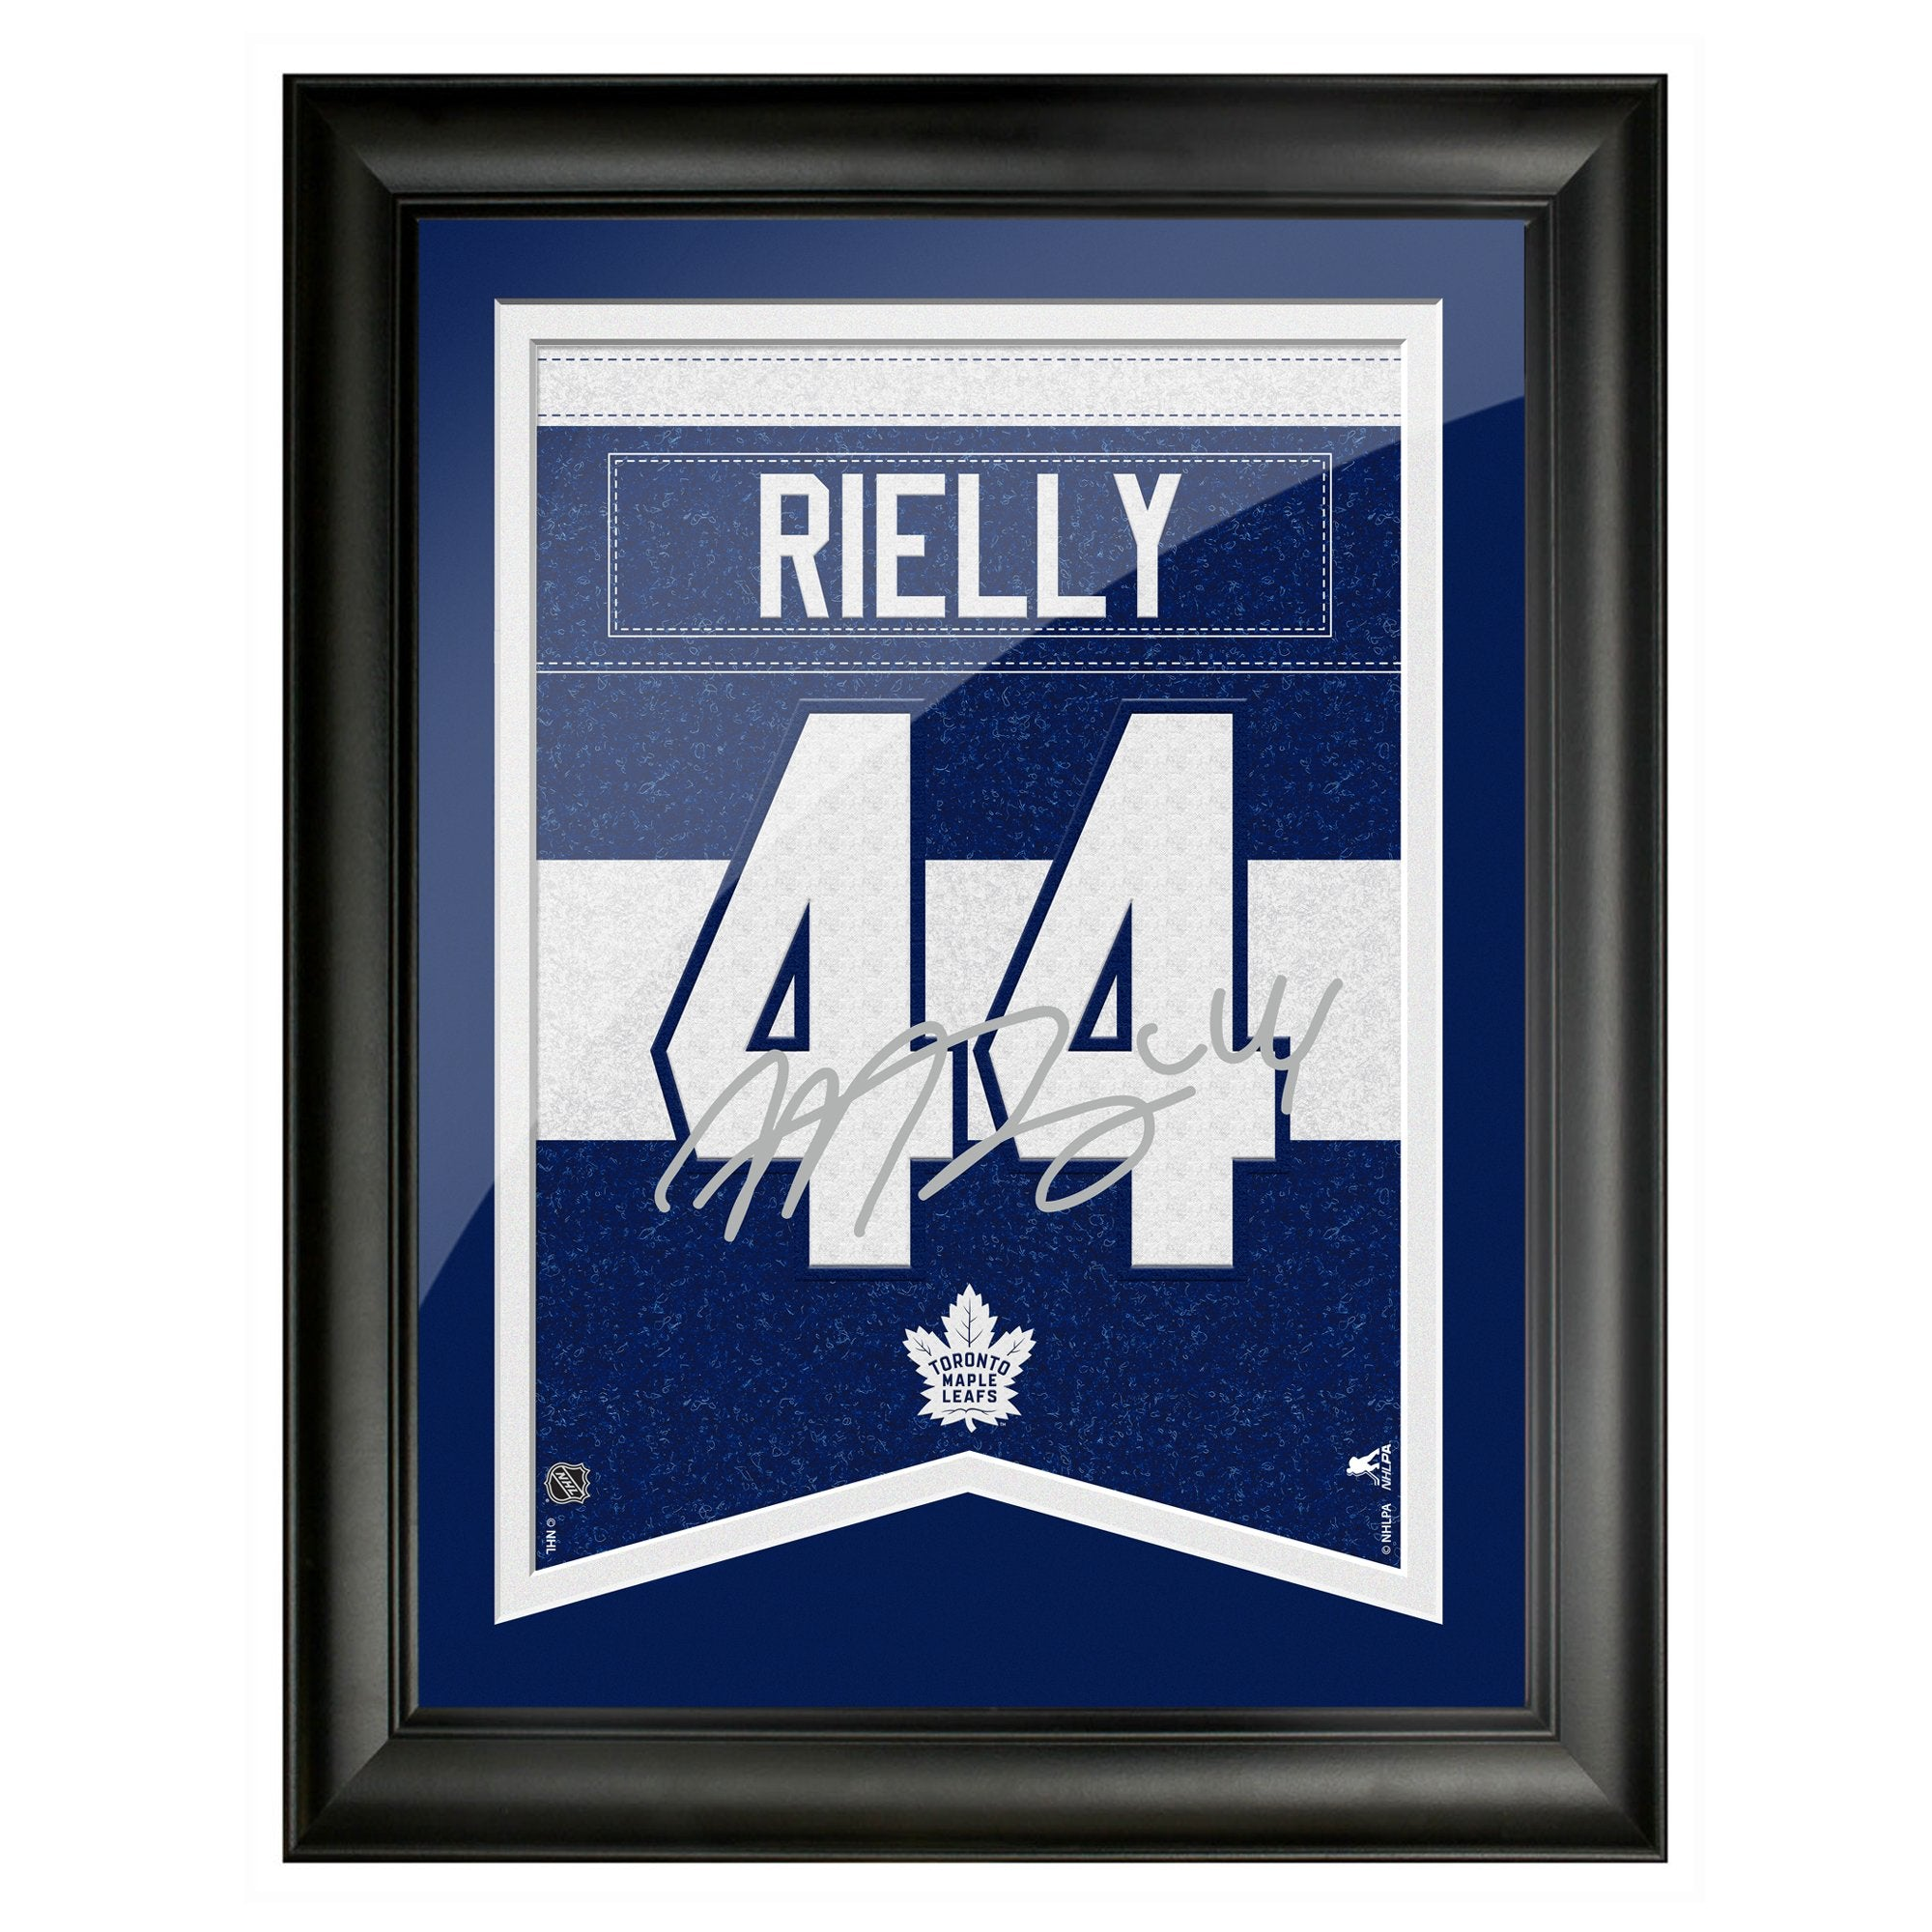 Toronto Maple Leafs Rielly 12x16 Framed Player Number with Replica Autograph